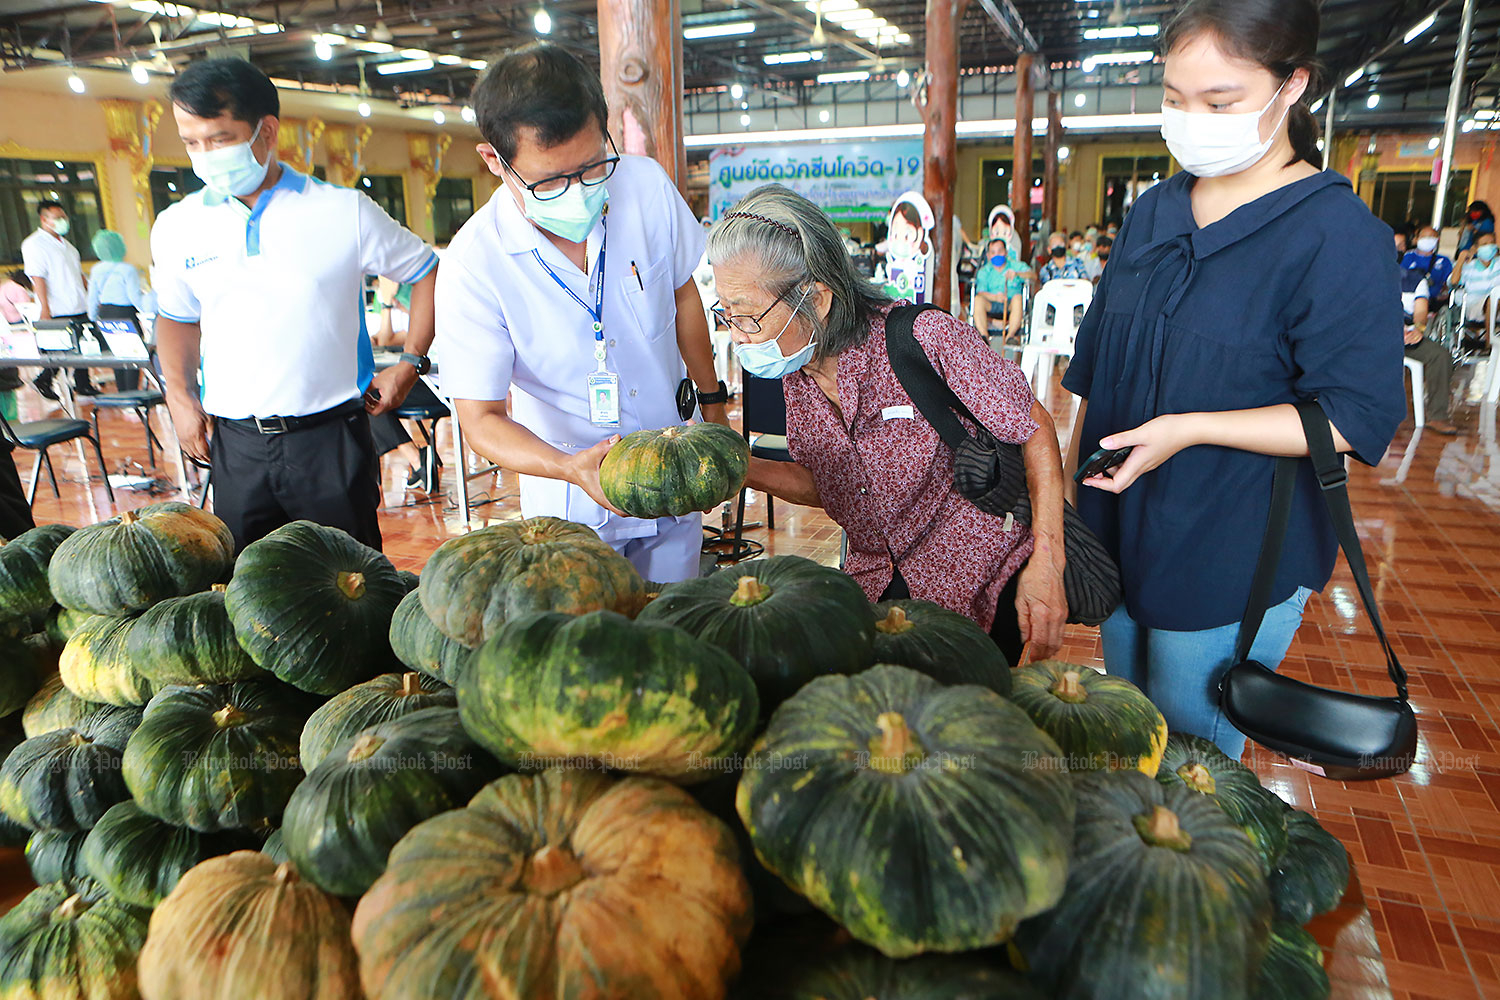 Take your pick: A medical worker selects a pumpkin for a woman after she received a Covid-19 vaccination at Wat Bang Phli Klang in Samut Prakan. The temple abbot has given away free pumpkins to encourage people to have their jabs. (Photo: Somchai Poomlard)